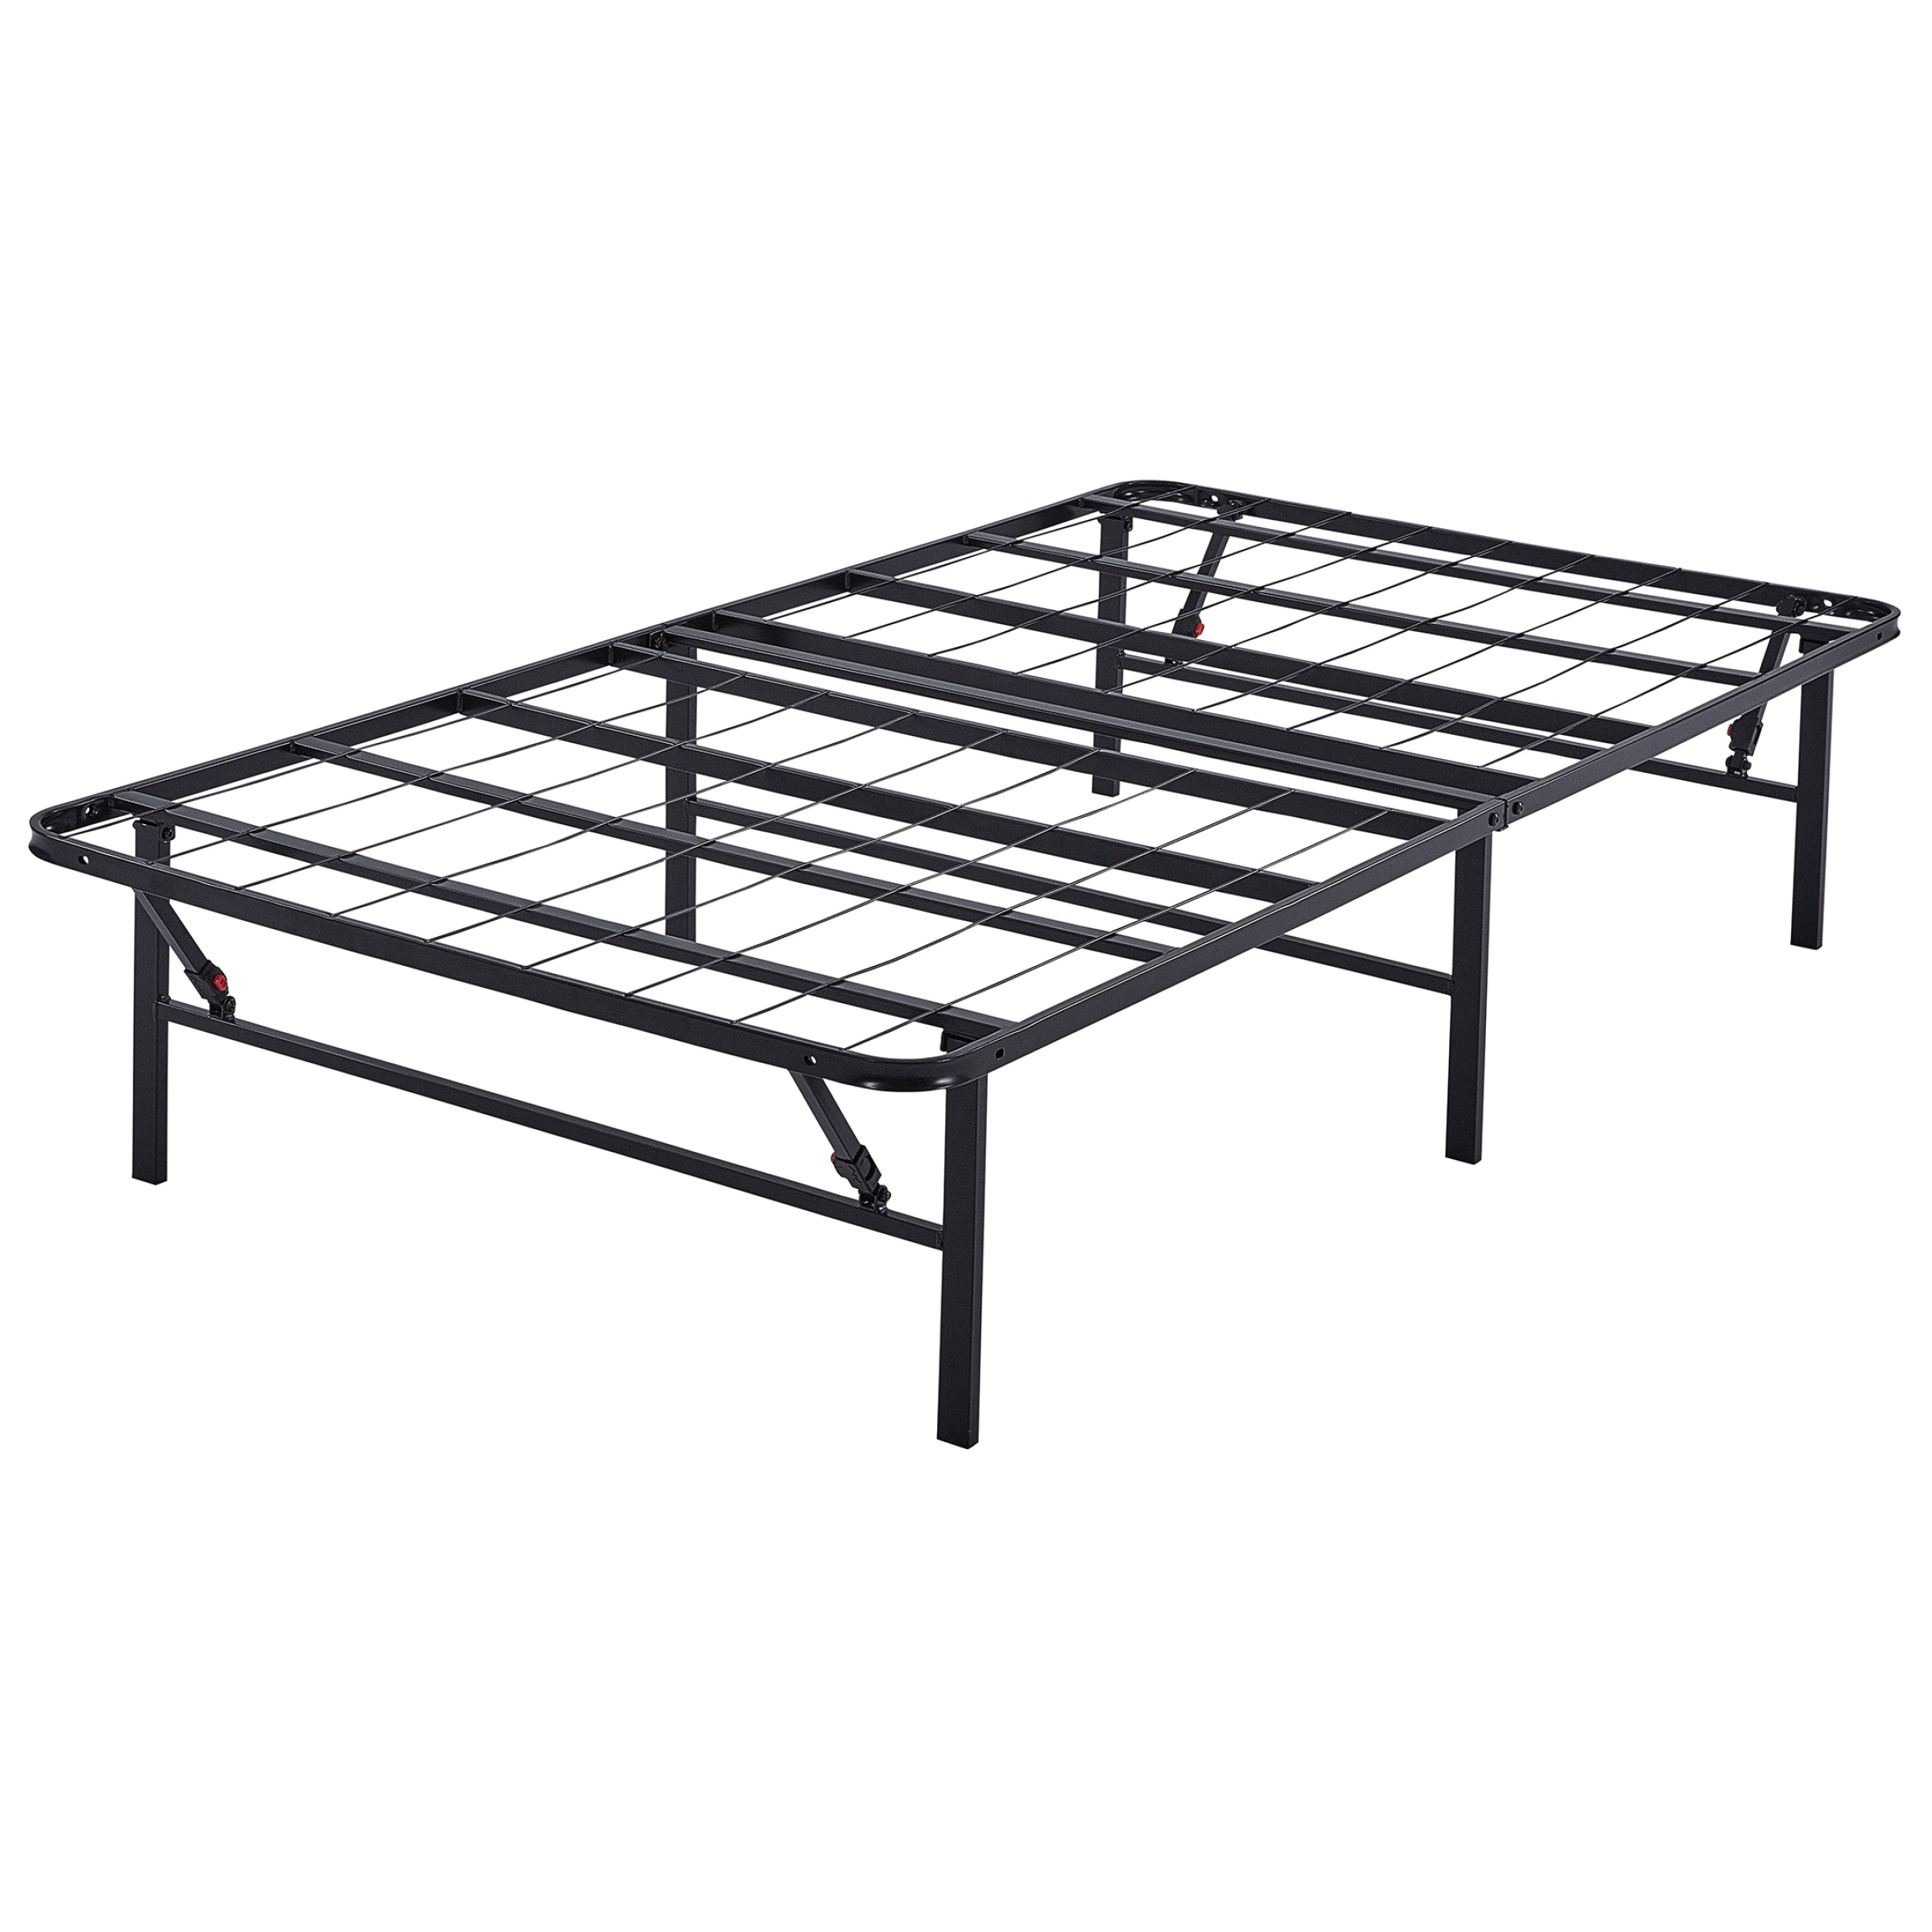 """Mainstays 14"""" High Profile Foldable Steel Bed Frame, Powder-coated Steel"""